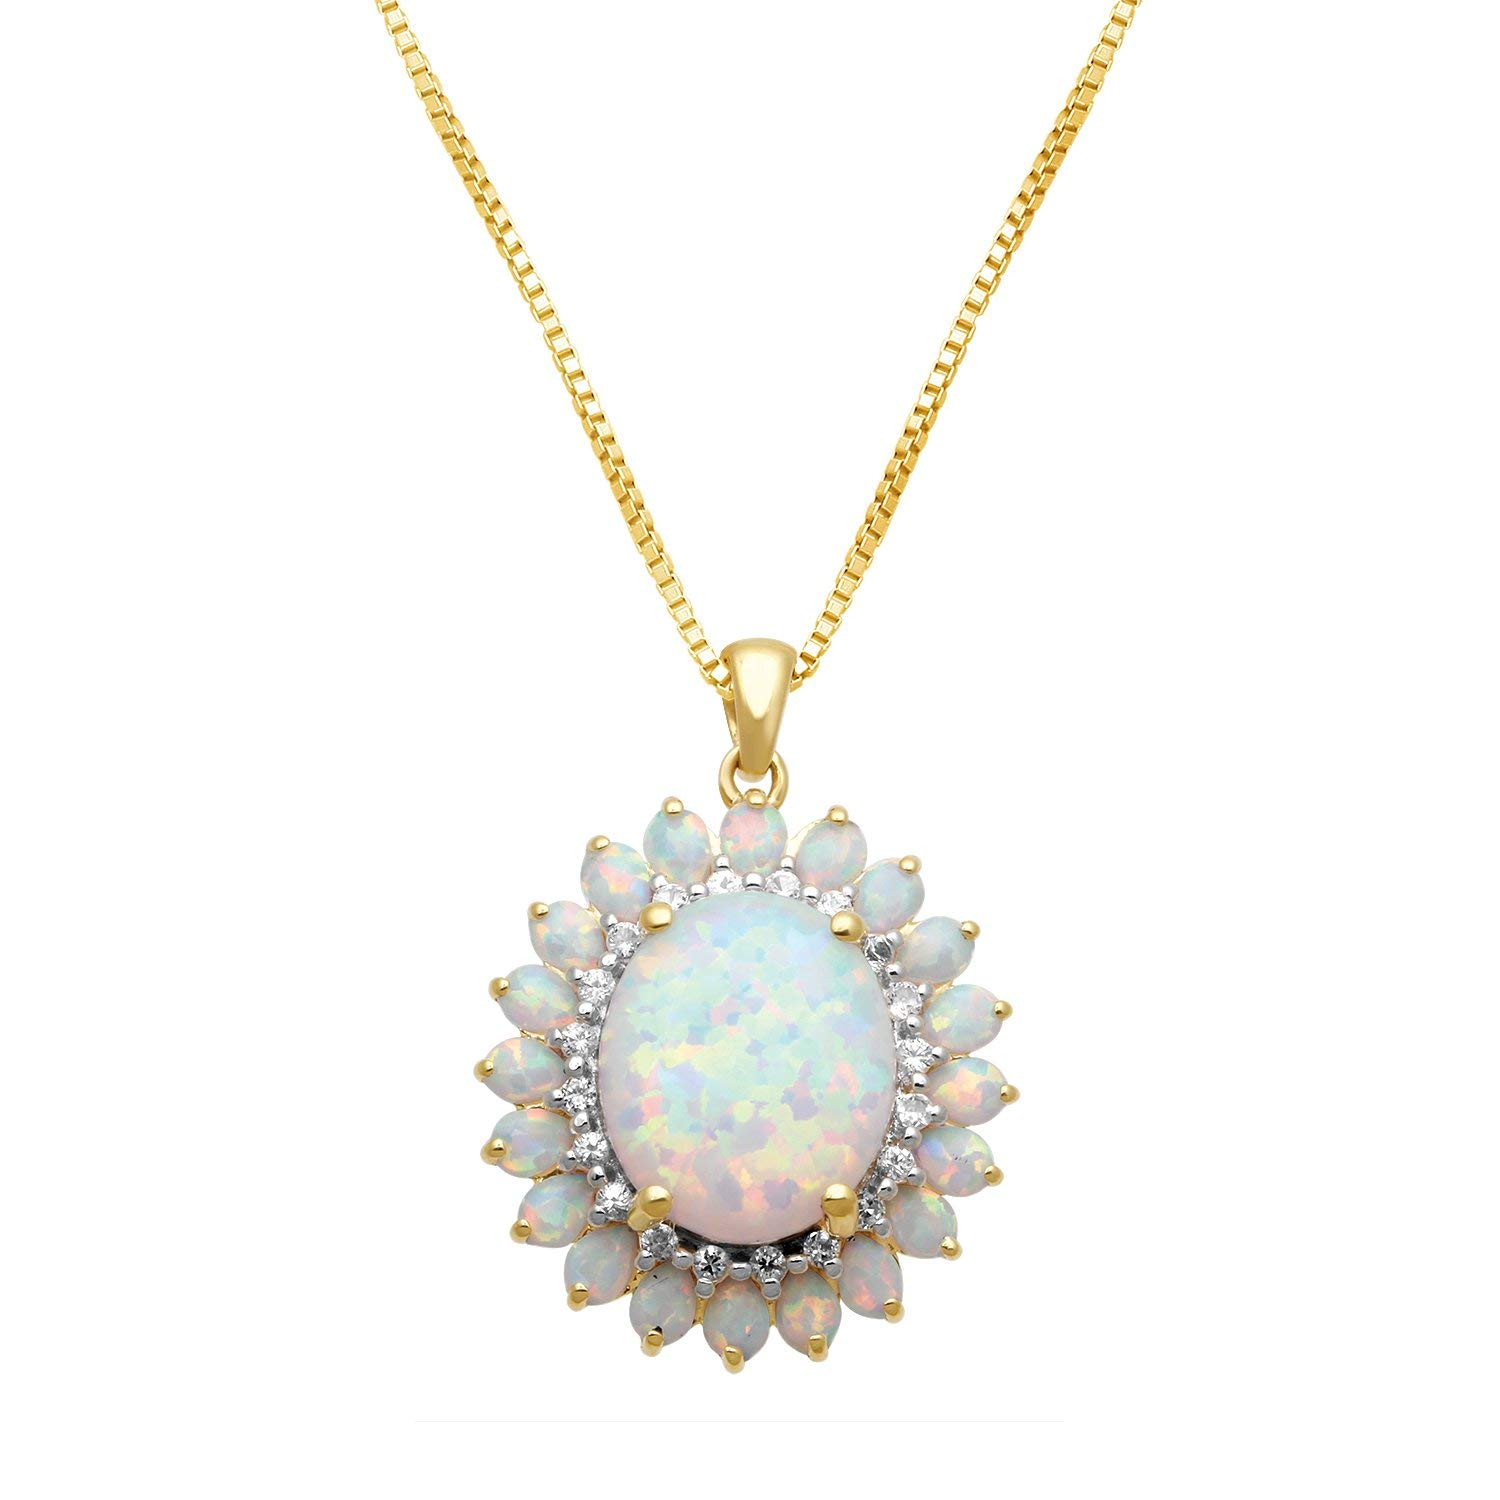 """Jewelili 18K Yellow Gold Plated Sterling Silver 12 X 10 mm Oval Created Opal with Created White Sapphire Blooming Pendant Necklace, 18"""""""